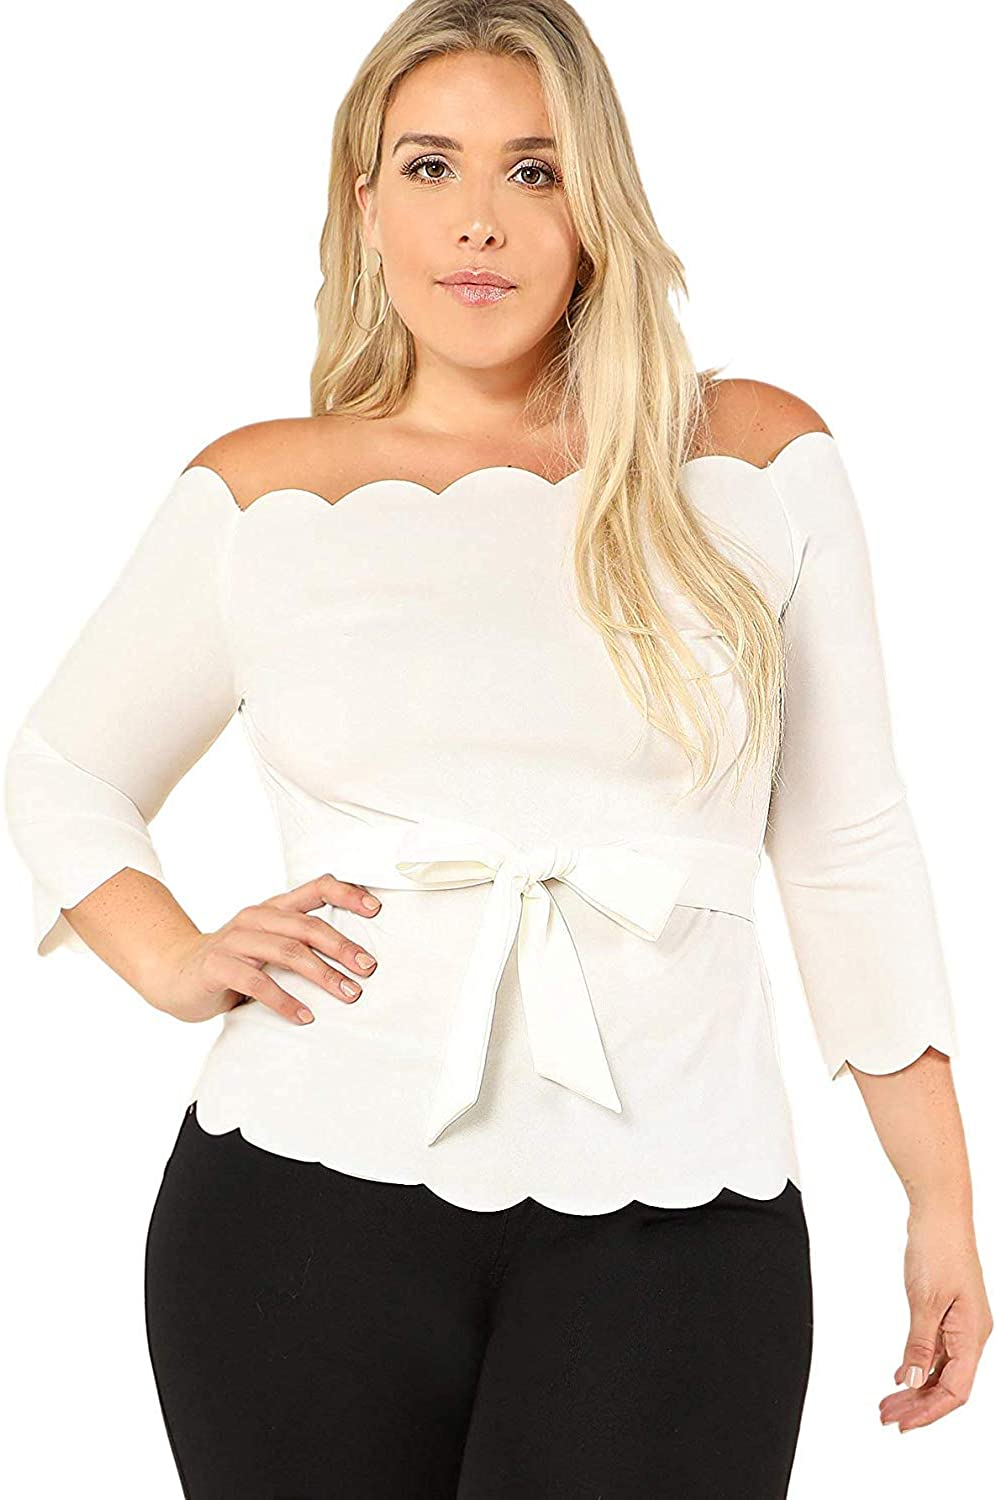 Plus Size Mix & Match Tops & Bottoms 08